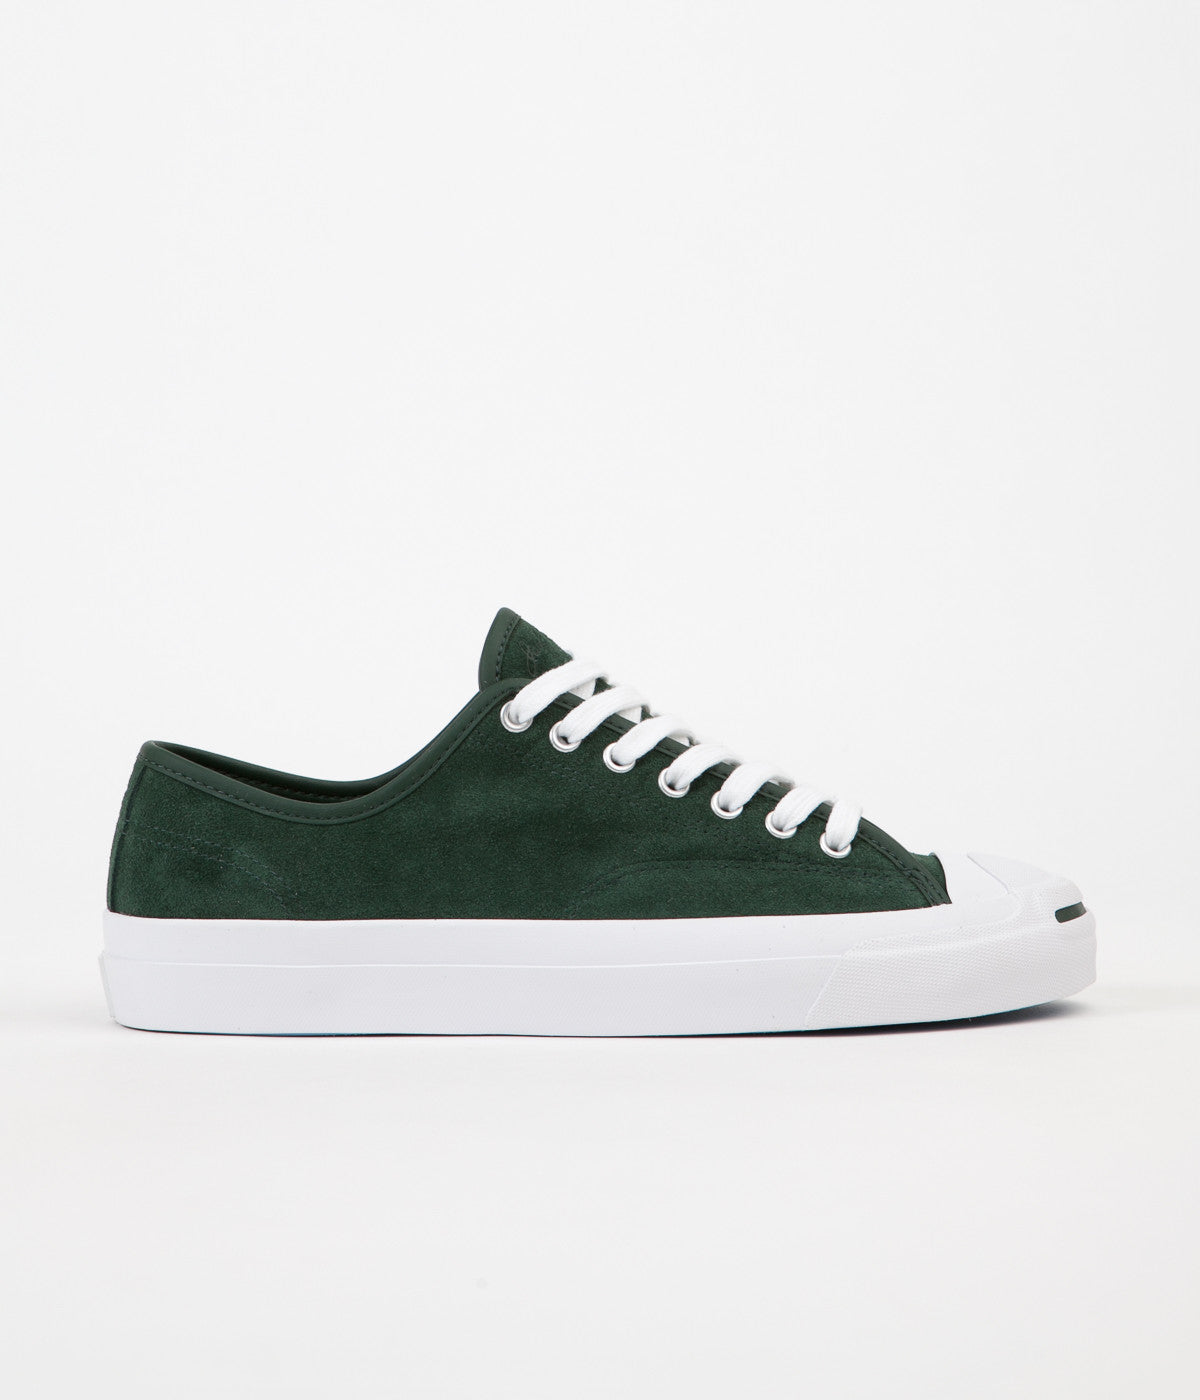 878a1eac8a0c Converse x Polar Jack Purcell JP Pro Ox Shoes - Deep Emerald   Deep Emerald    White